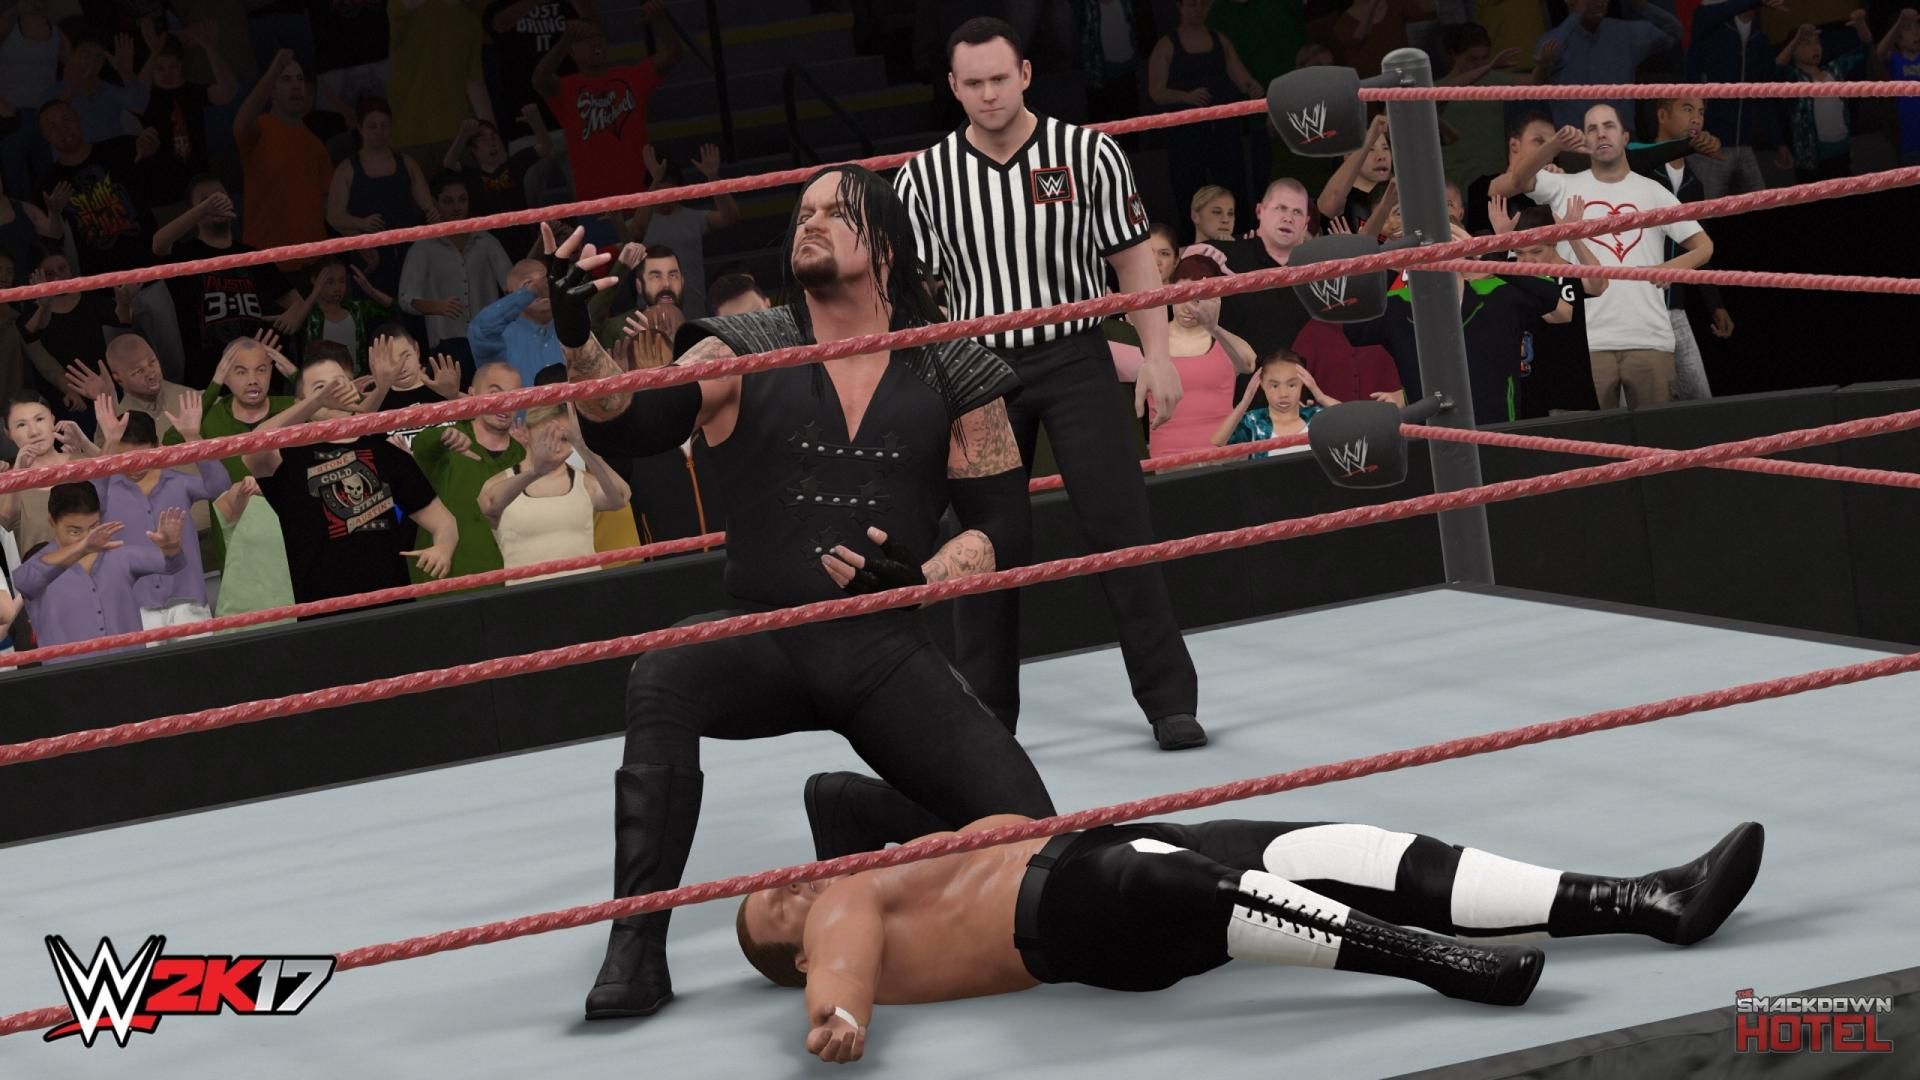 WWE 2K17 Coming To PC on February 7! - Release Date, Price & PC Specs